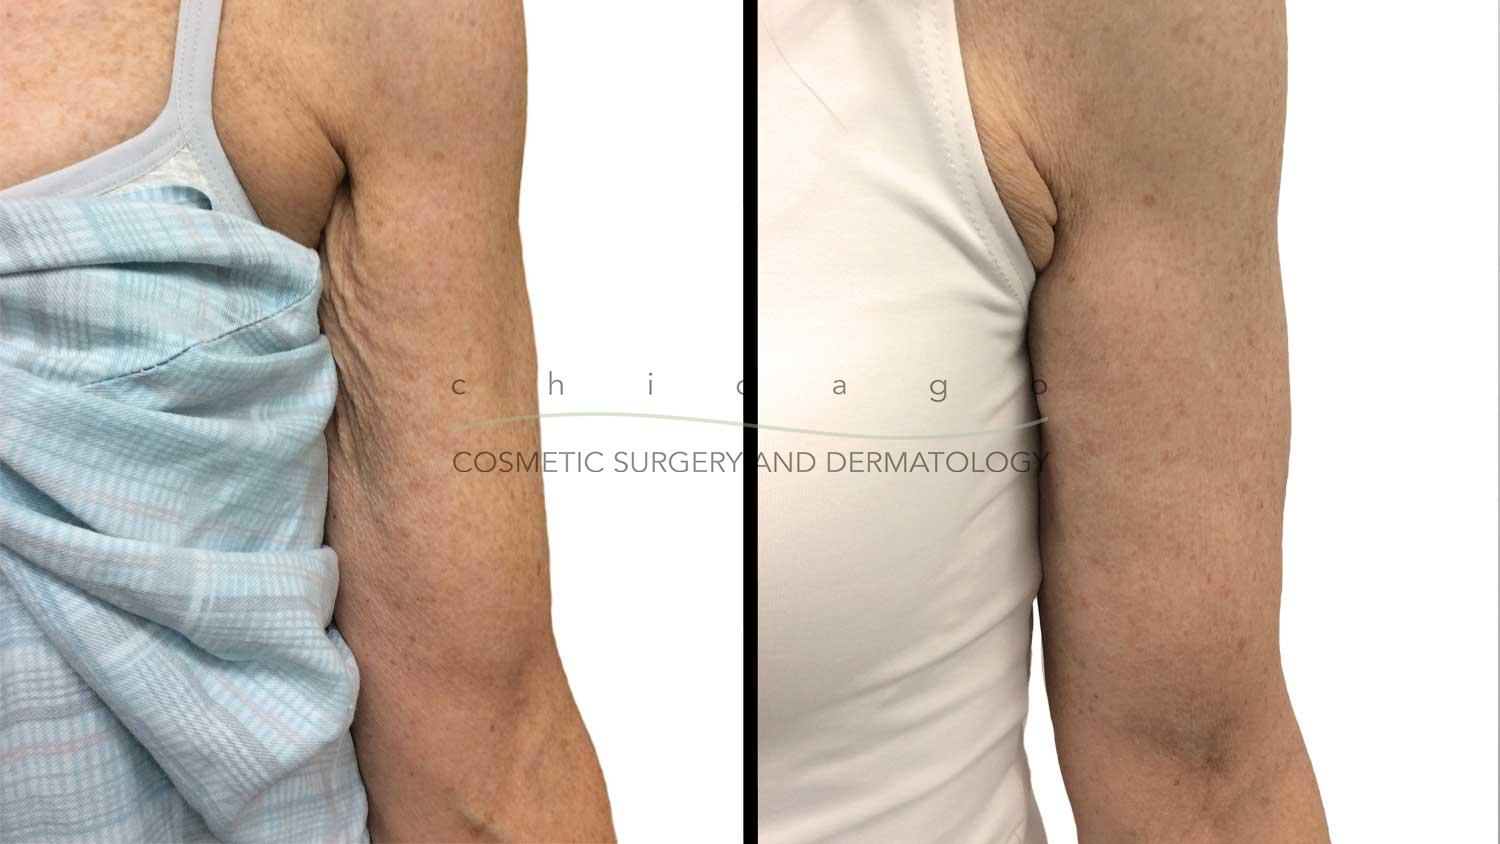 Sculptra for arm crepiness by Dr. Ibrahim